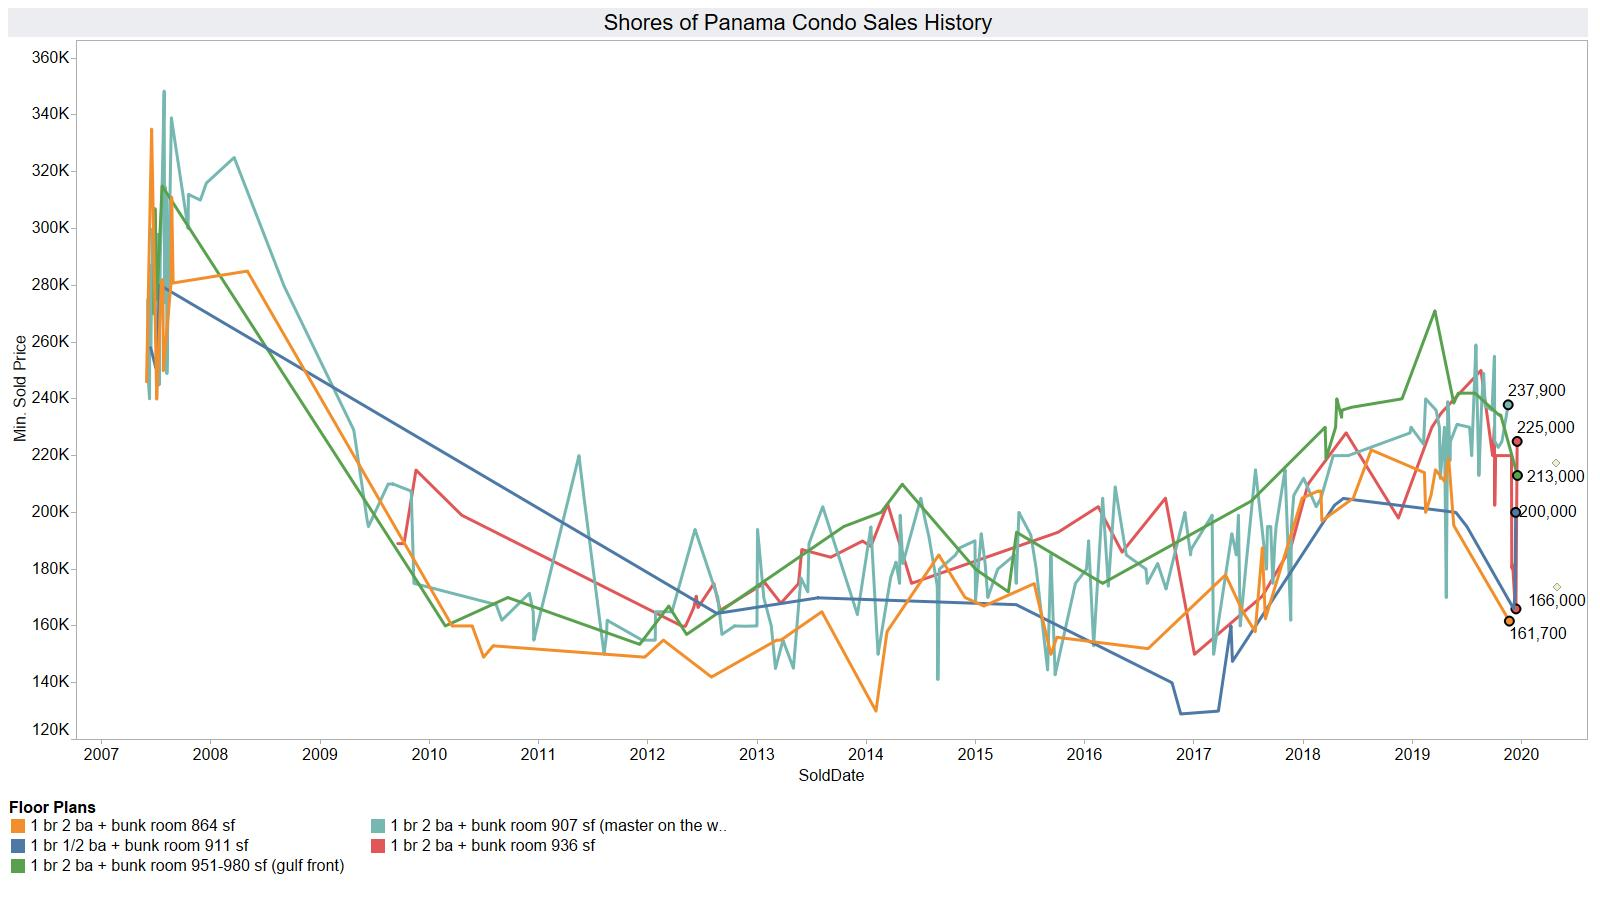 Shores of Panama condo sales history for one bedrooms